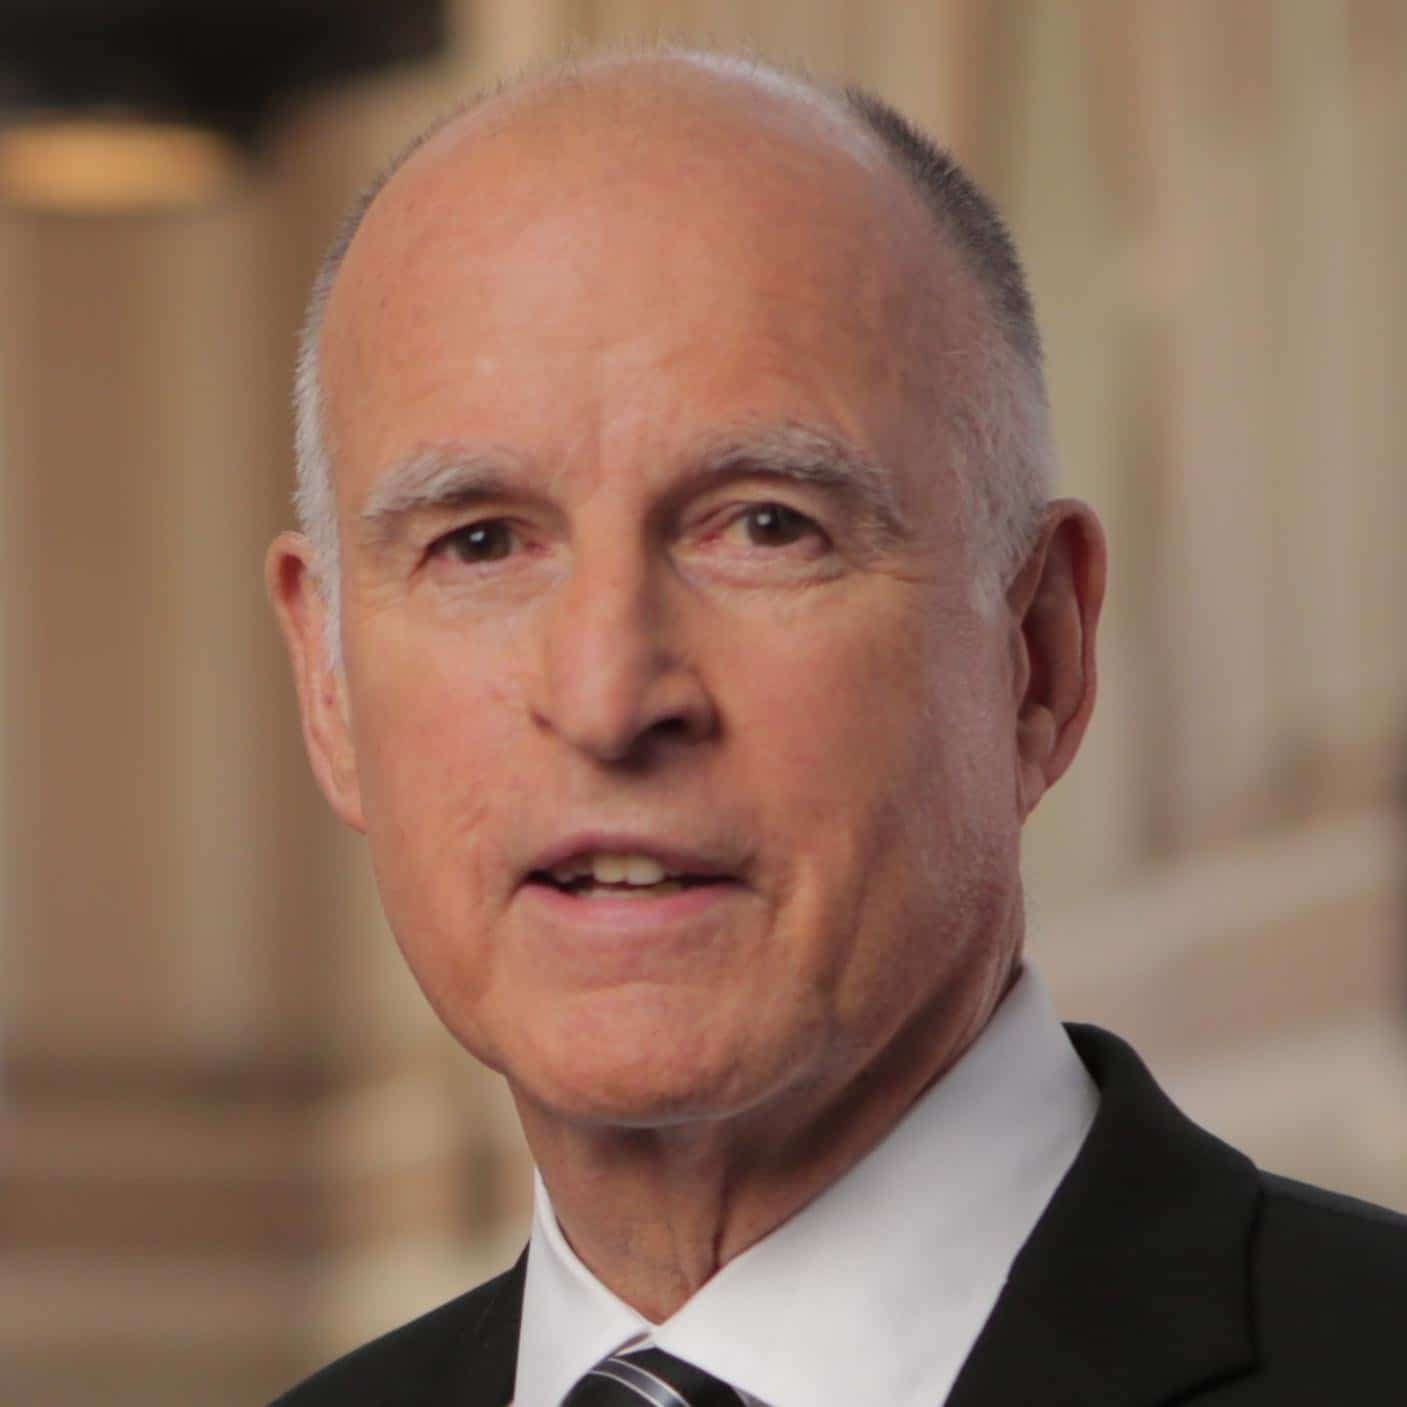 Governor Brown Releases 2018-2019 Budget Proposal